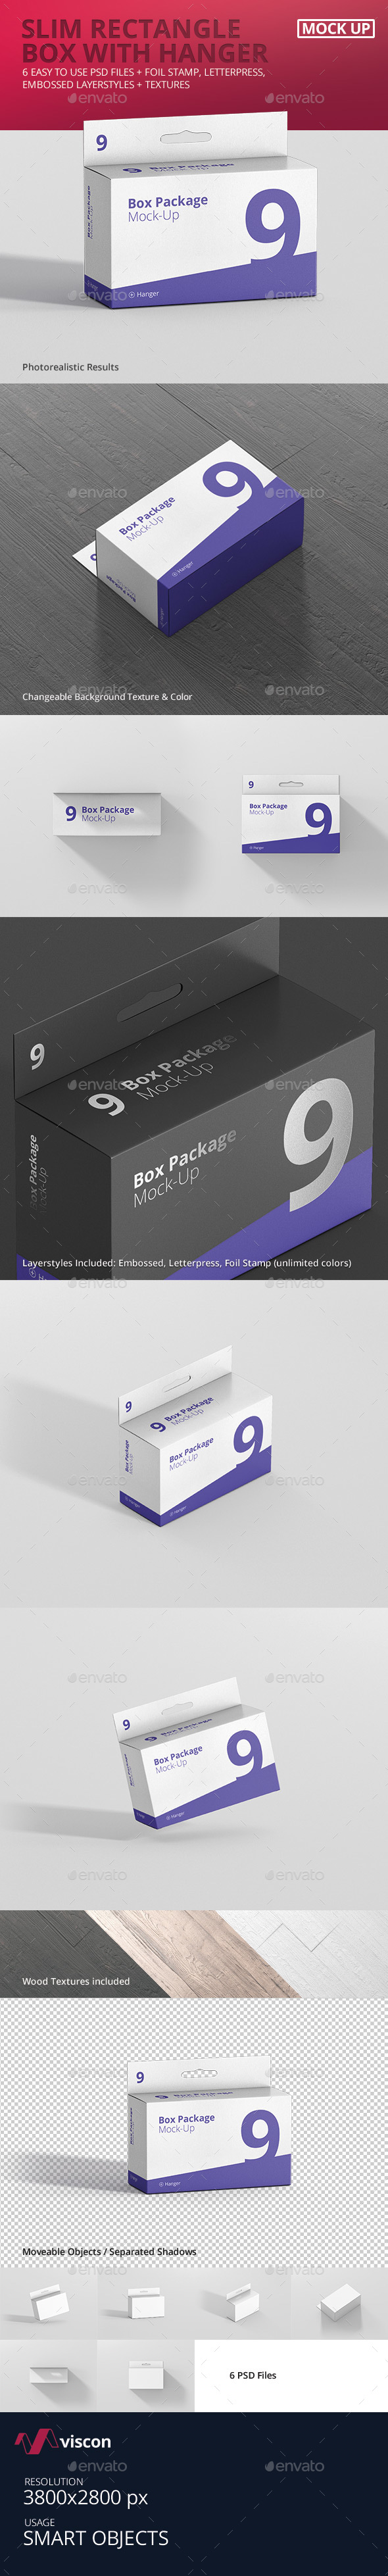 Package Box Mockup - Slim Rectangle with Hanger - Miscellaneous Packaging